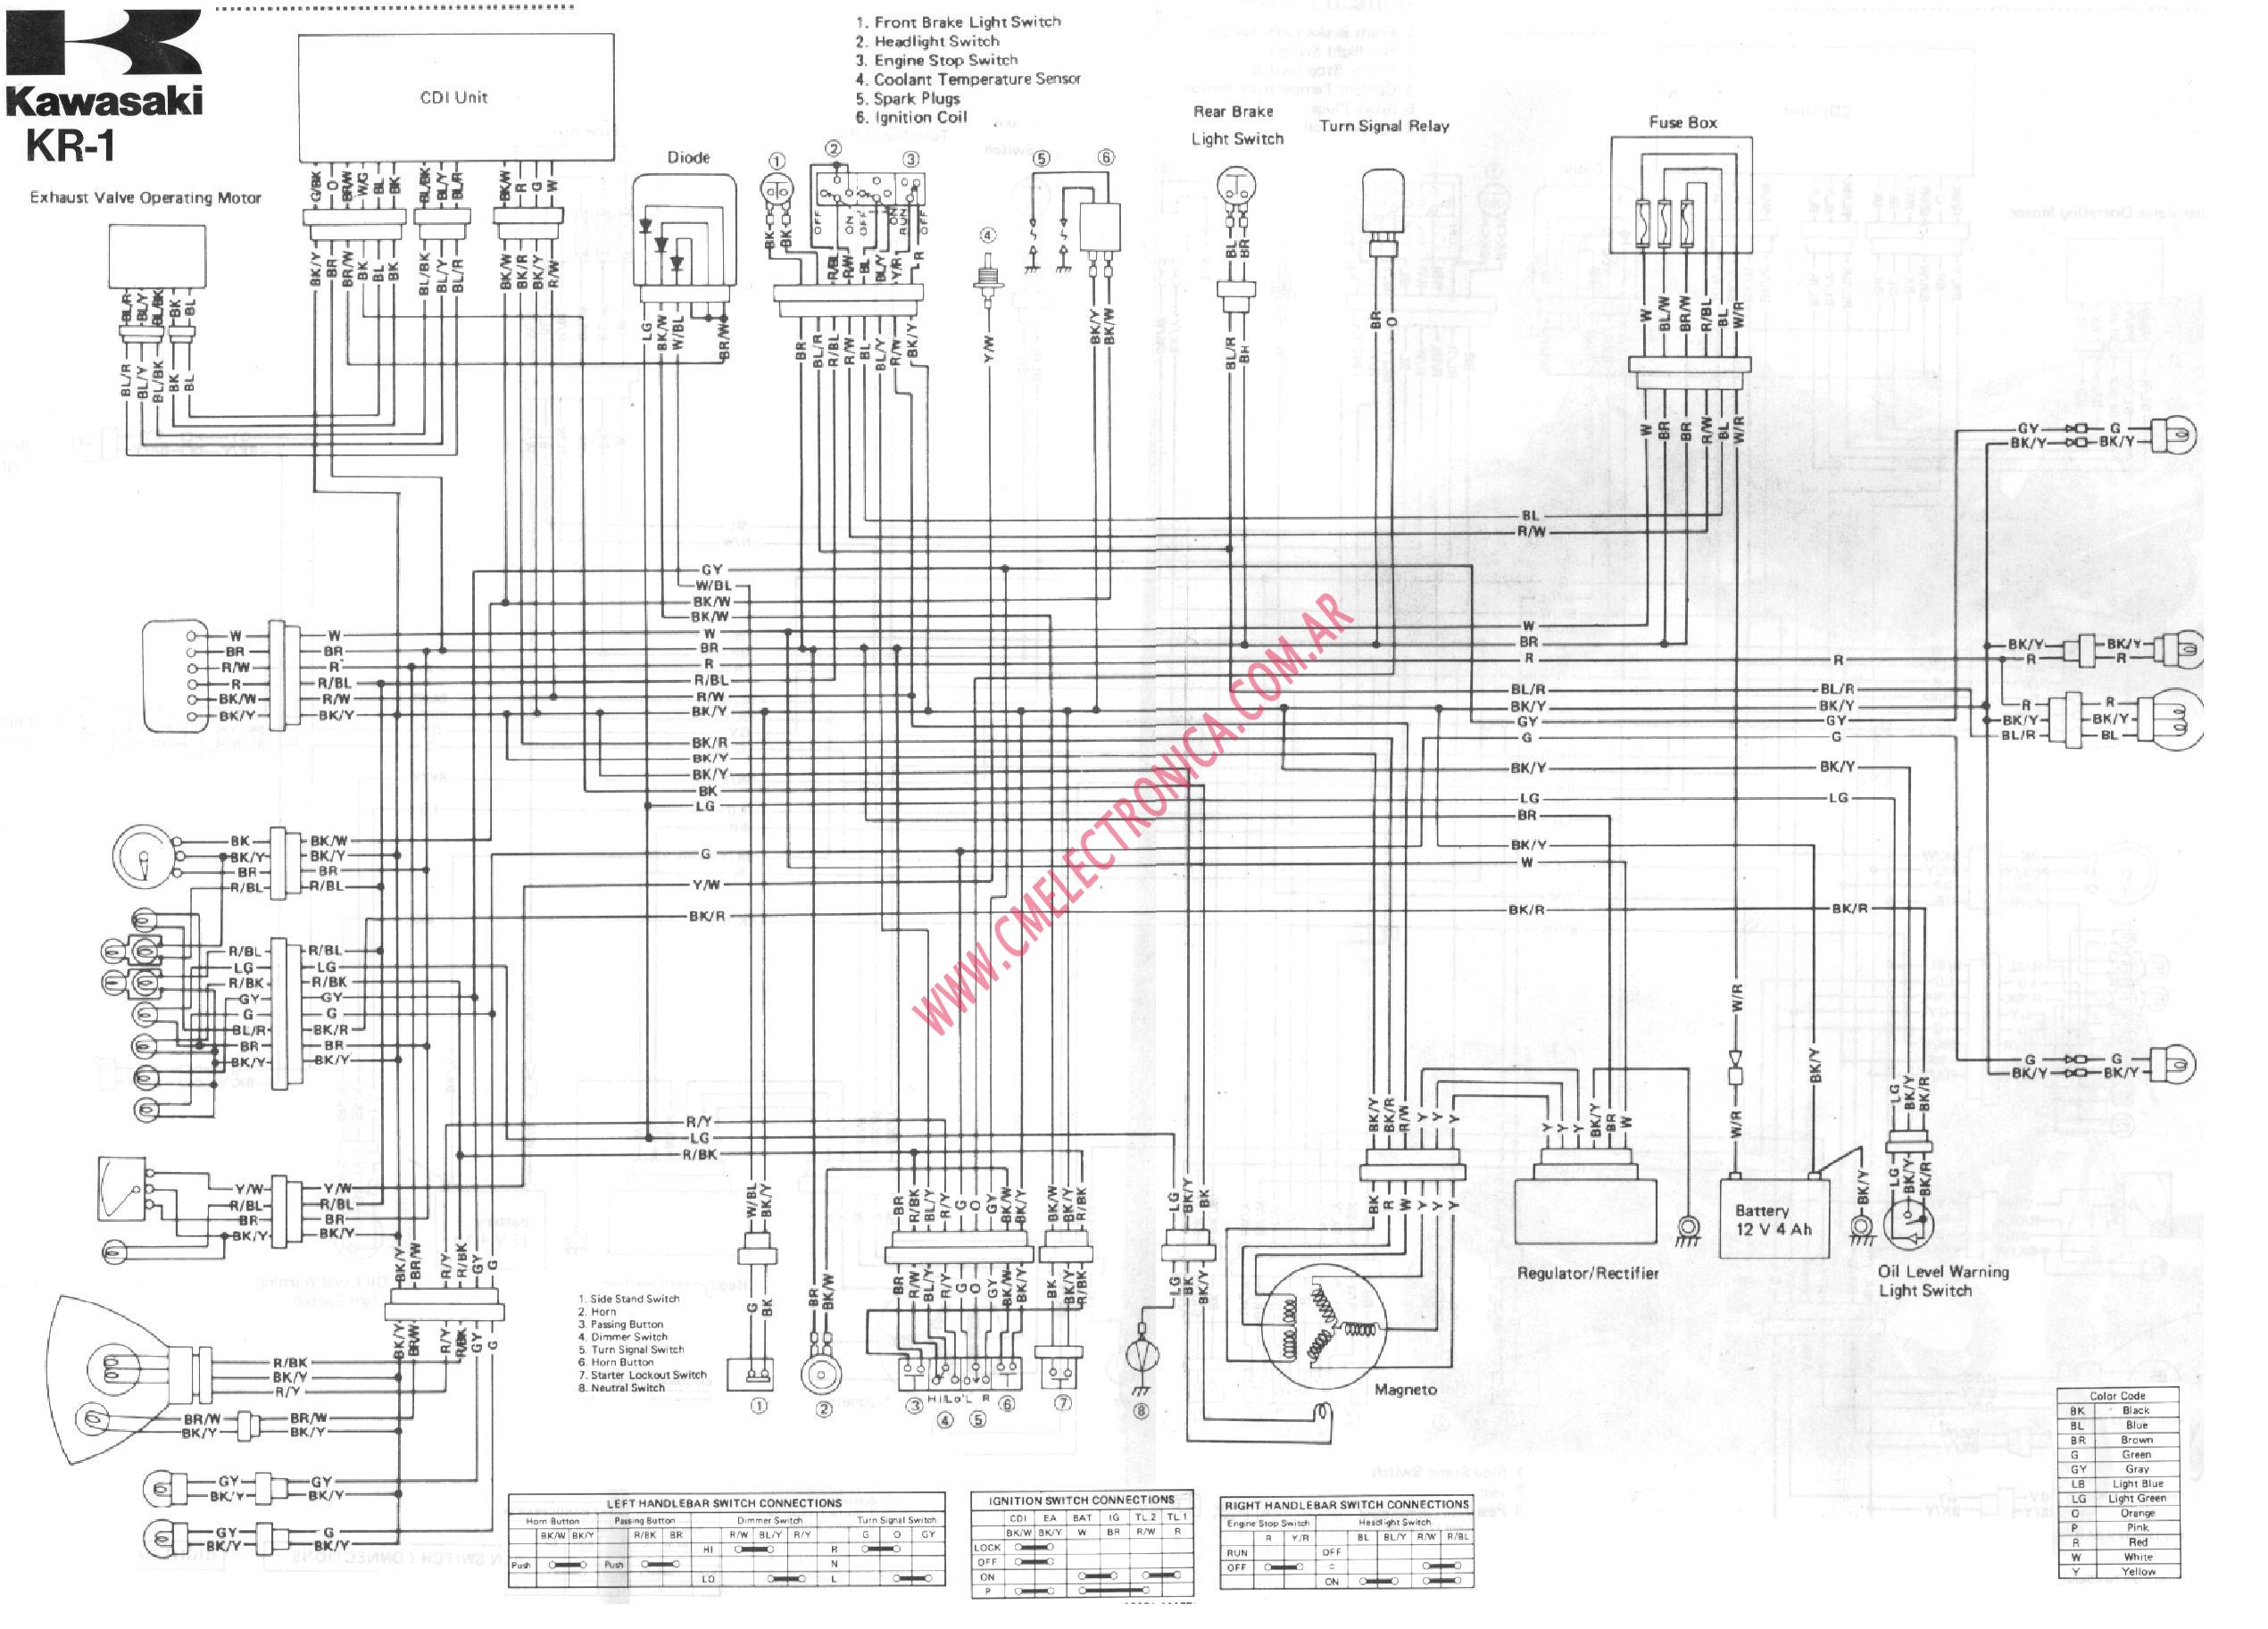 Kawasaki Kfx 90 Wiring Diagram Wiring Diagrams further Kawasaki Kr250 as well 597943 likewise Kawasaki Bayou Klf300 Wiring Diagram besides Kawasaki 400 Atv Wiring Diagram. on kawasaki bayou 250 wiring diagram